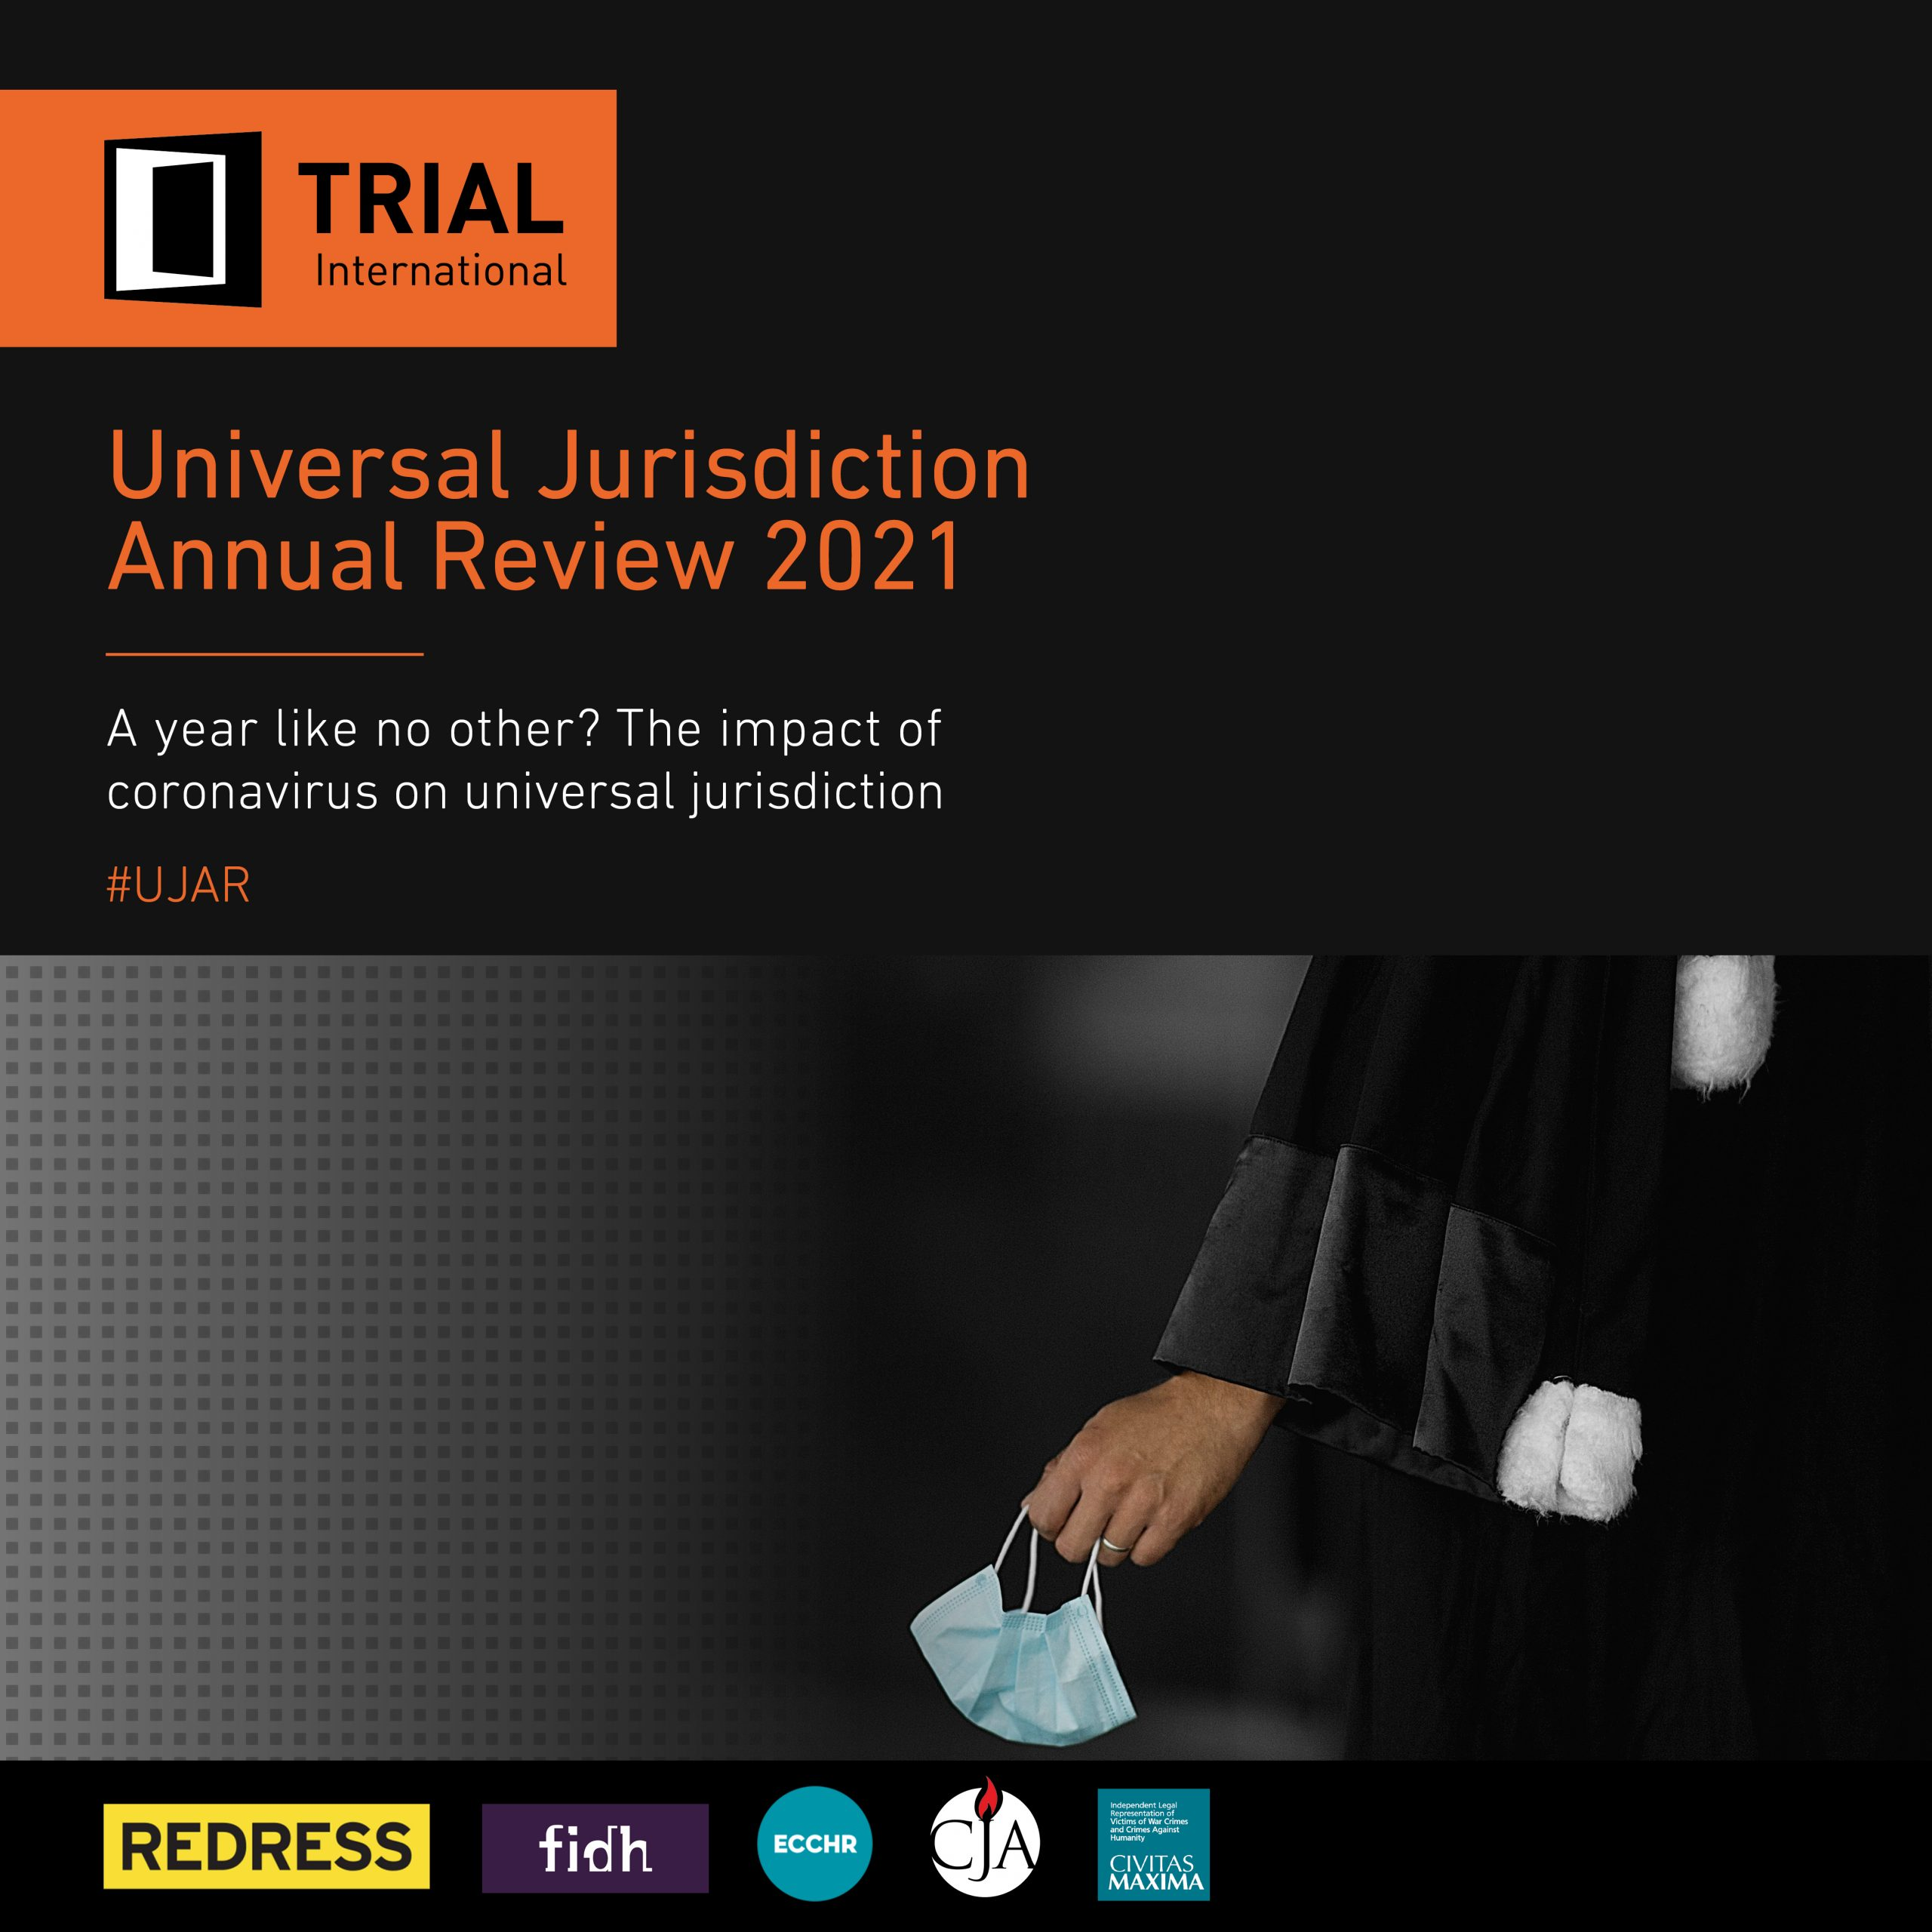 UJAR 2021: The Impact of Coronavirus on Universal Jurisdiction